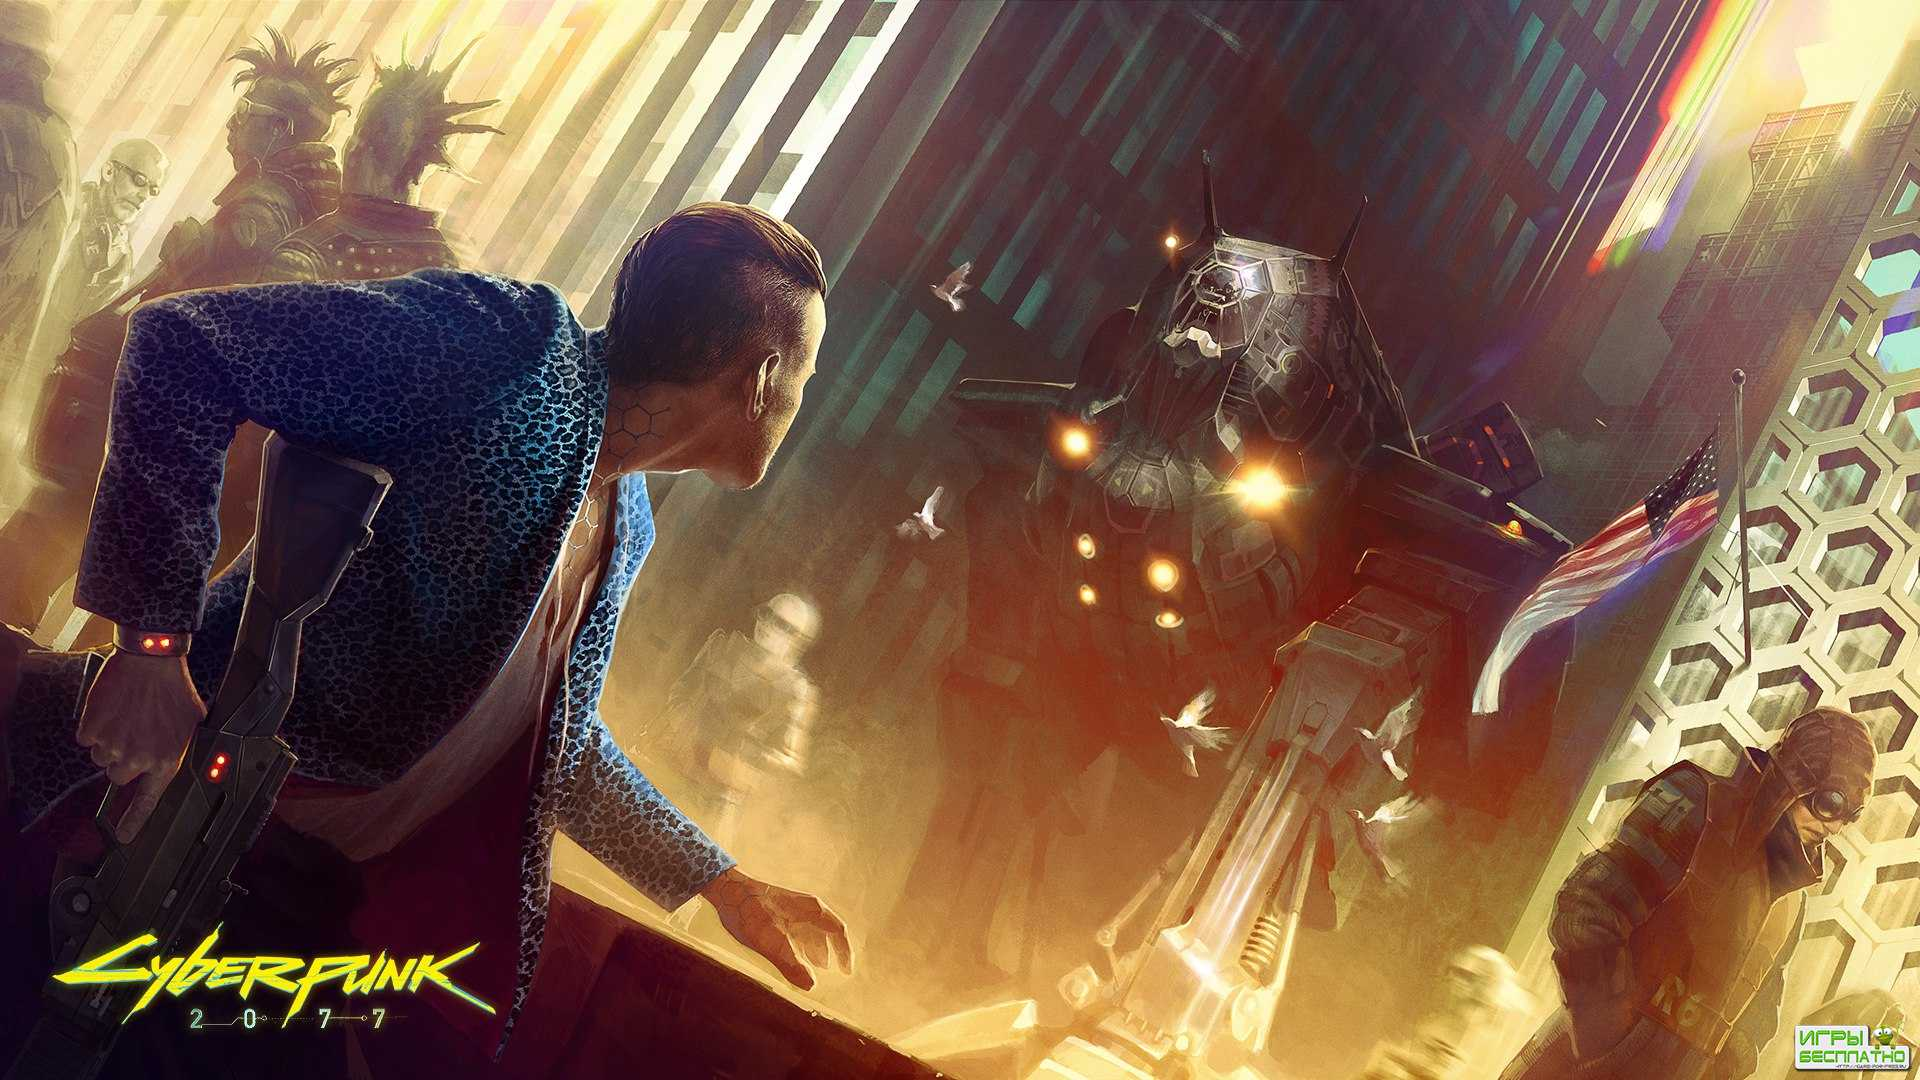 Разработка Cyberpunk 2077 была перезапущена после релиза The Witcher 3: Blo ...